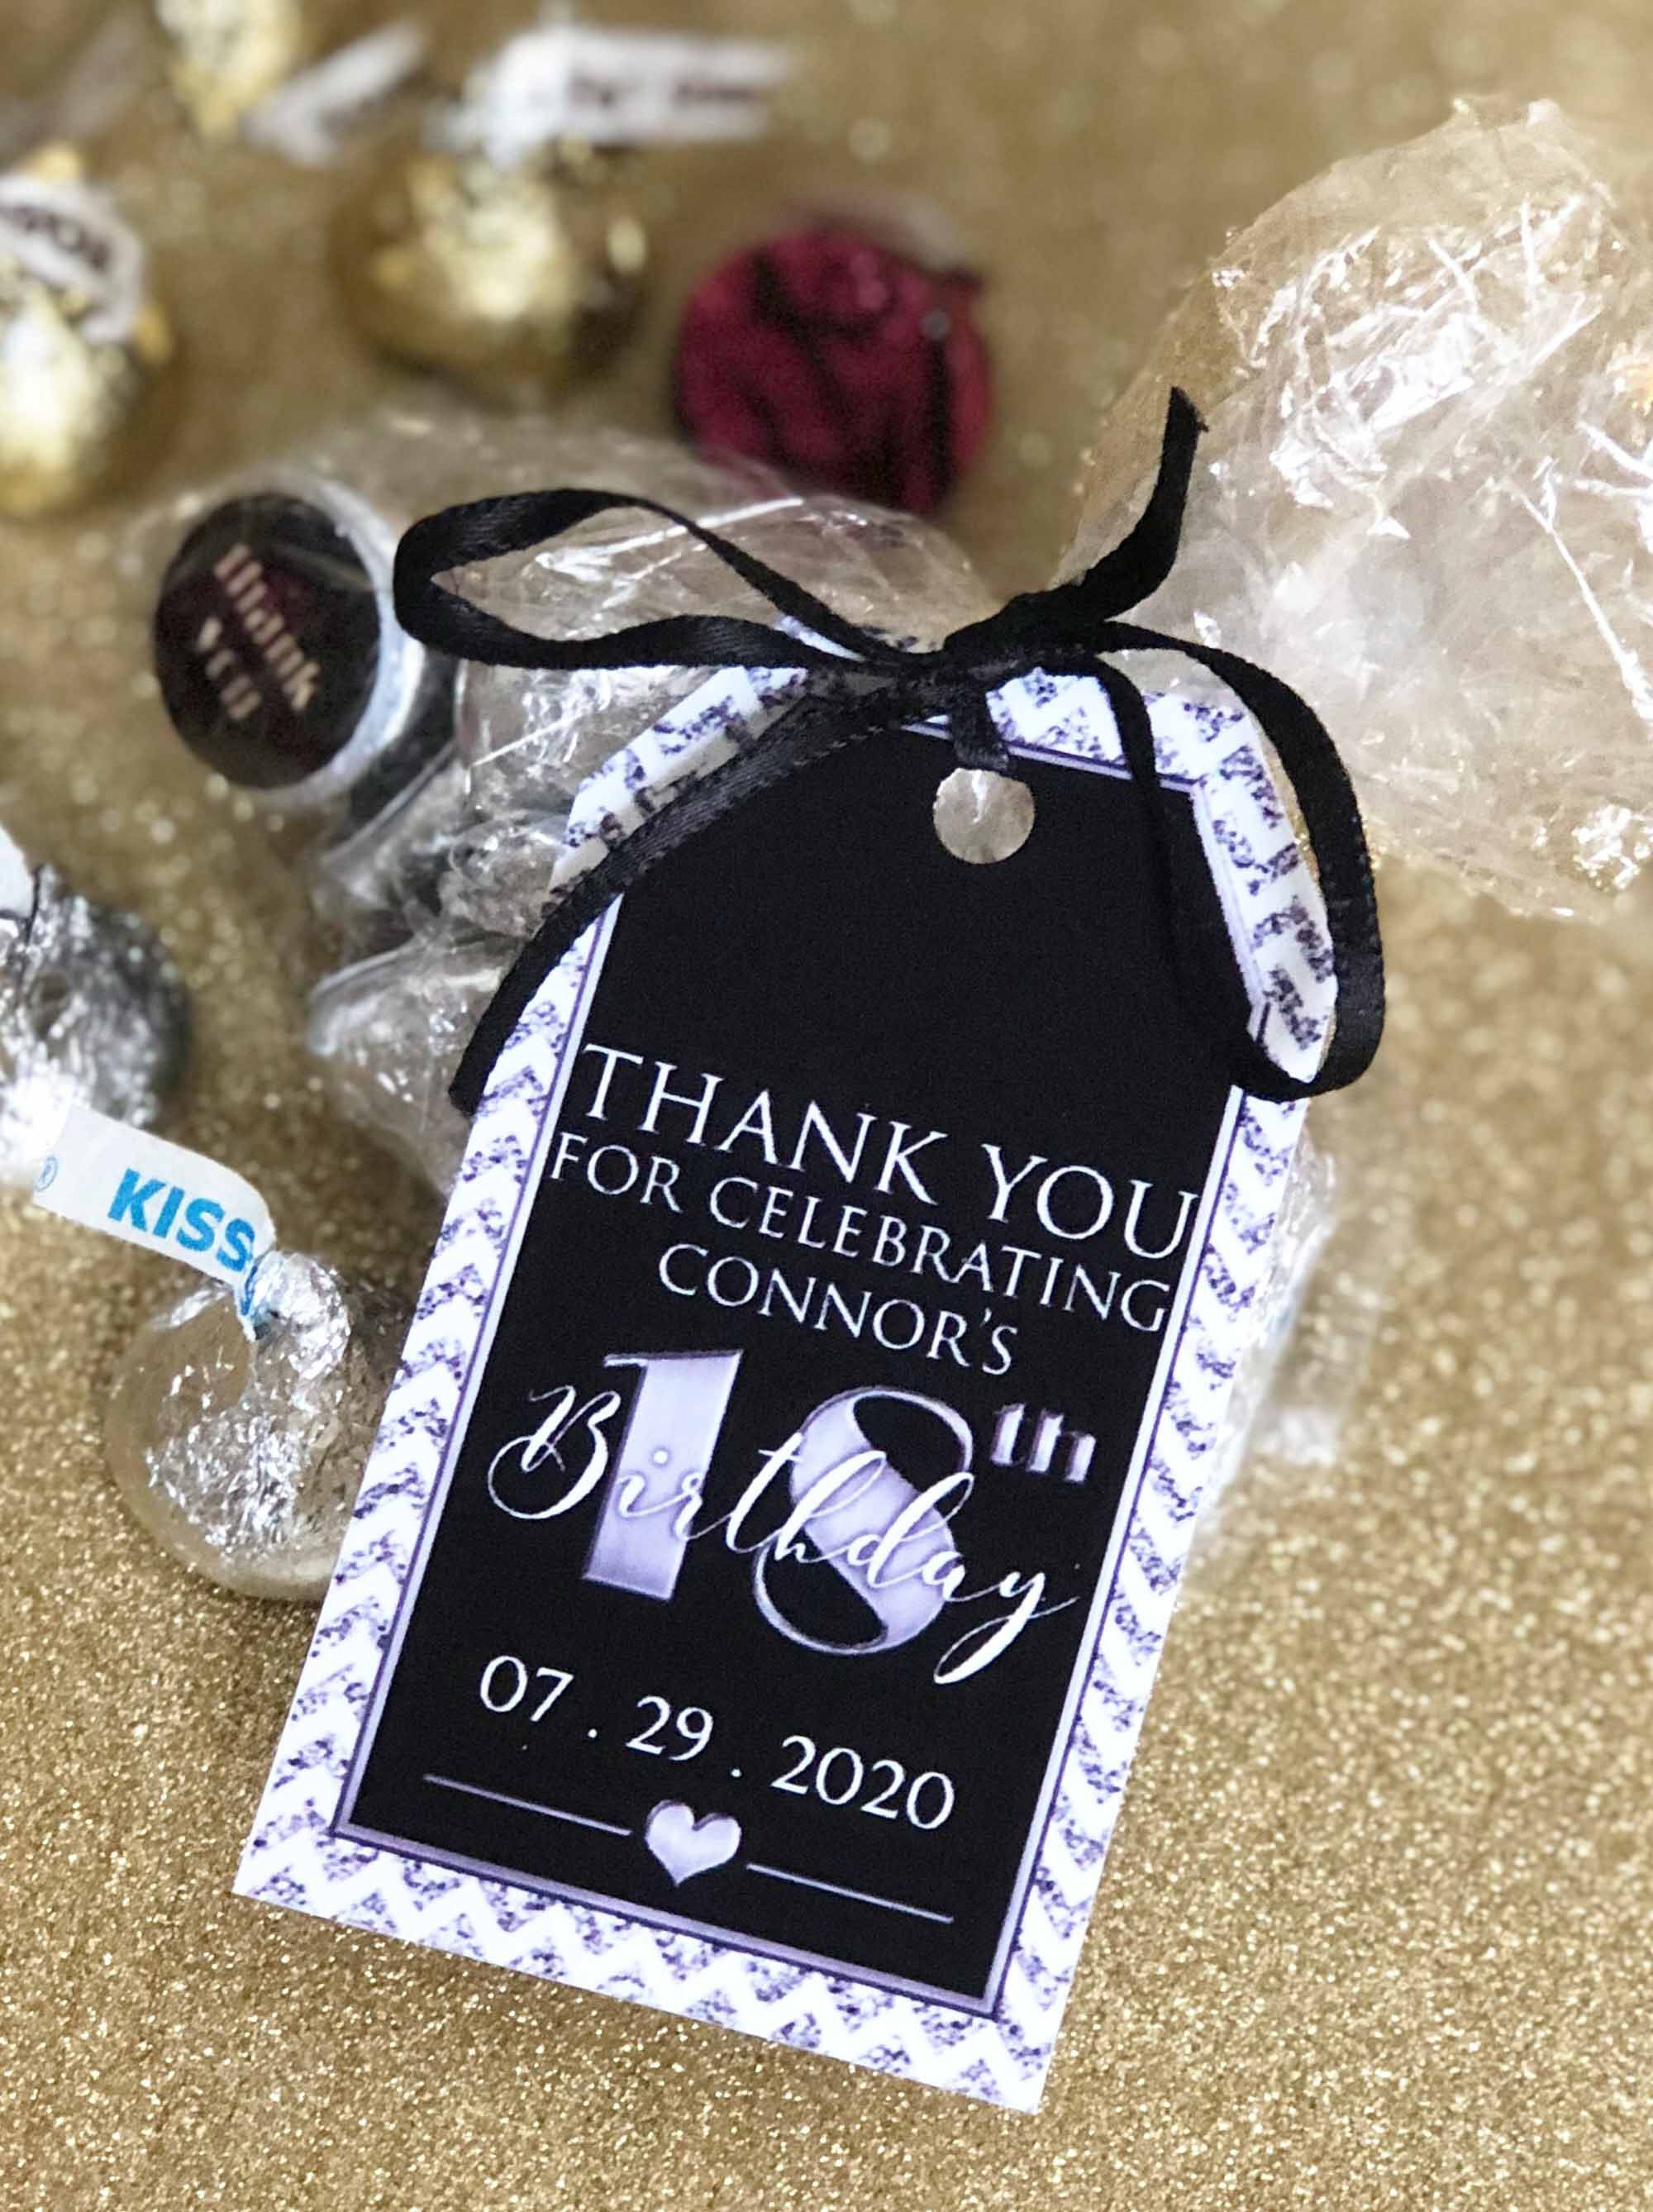 Silver Printable Tags 75th Birthday Personalized Tags 18th Etsy In 2021 Party Favor Tags Mini Wine Bottle Favors Birthday Thank You